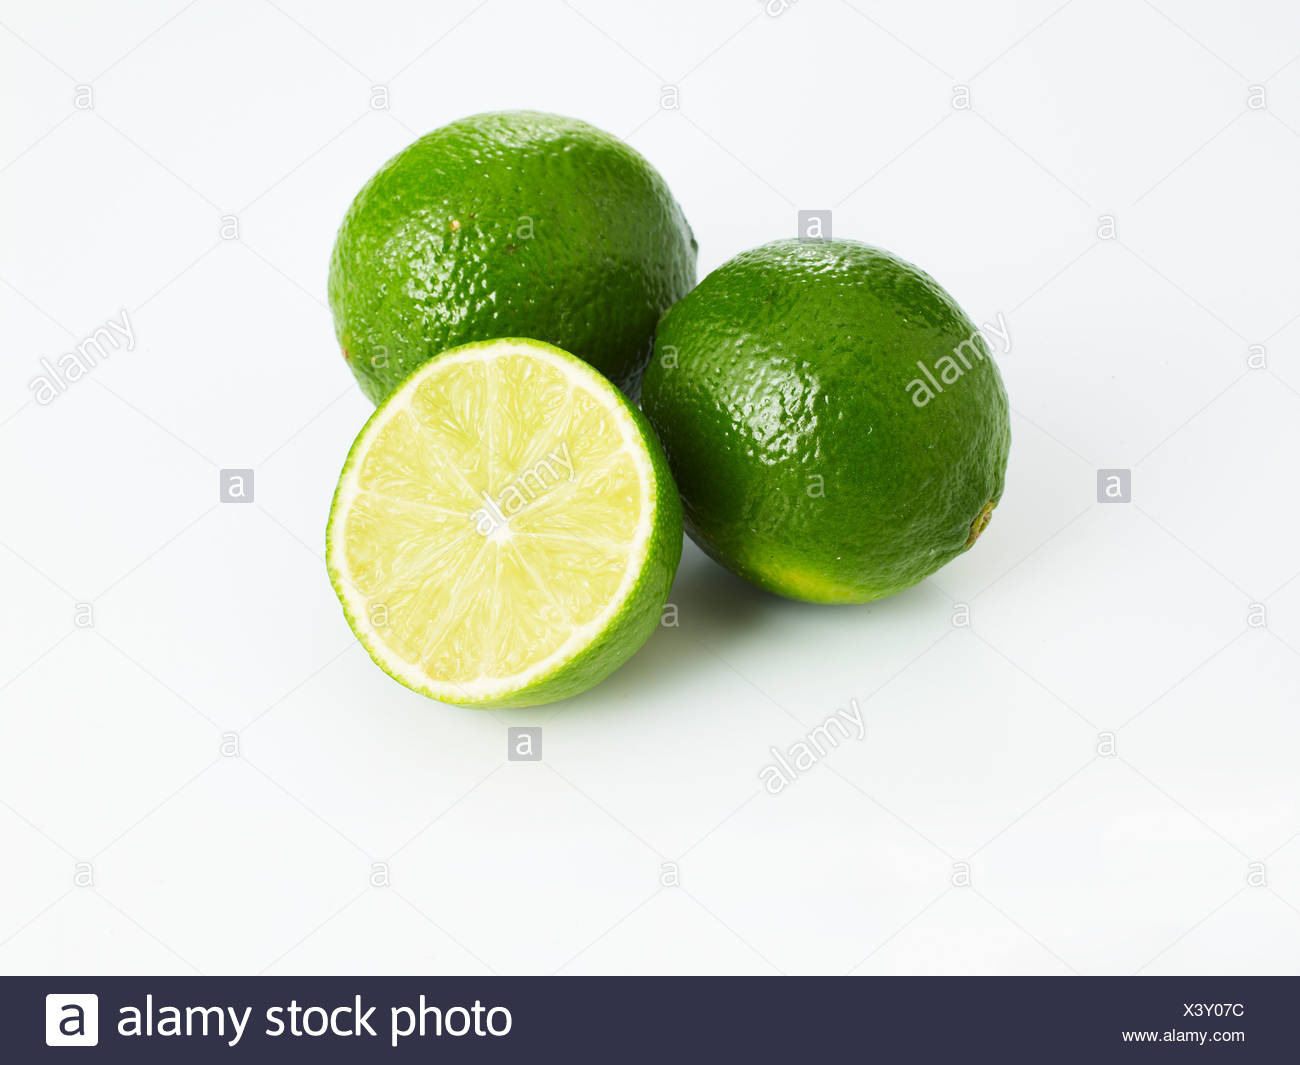 Limes on white background - Stock Image